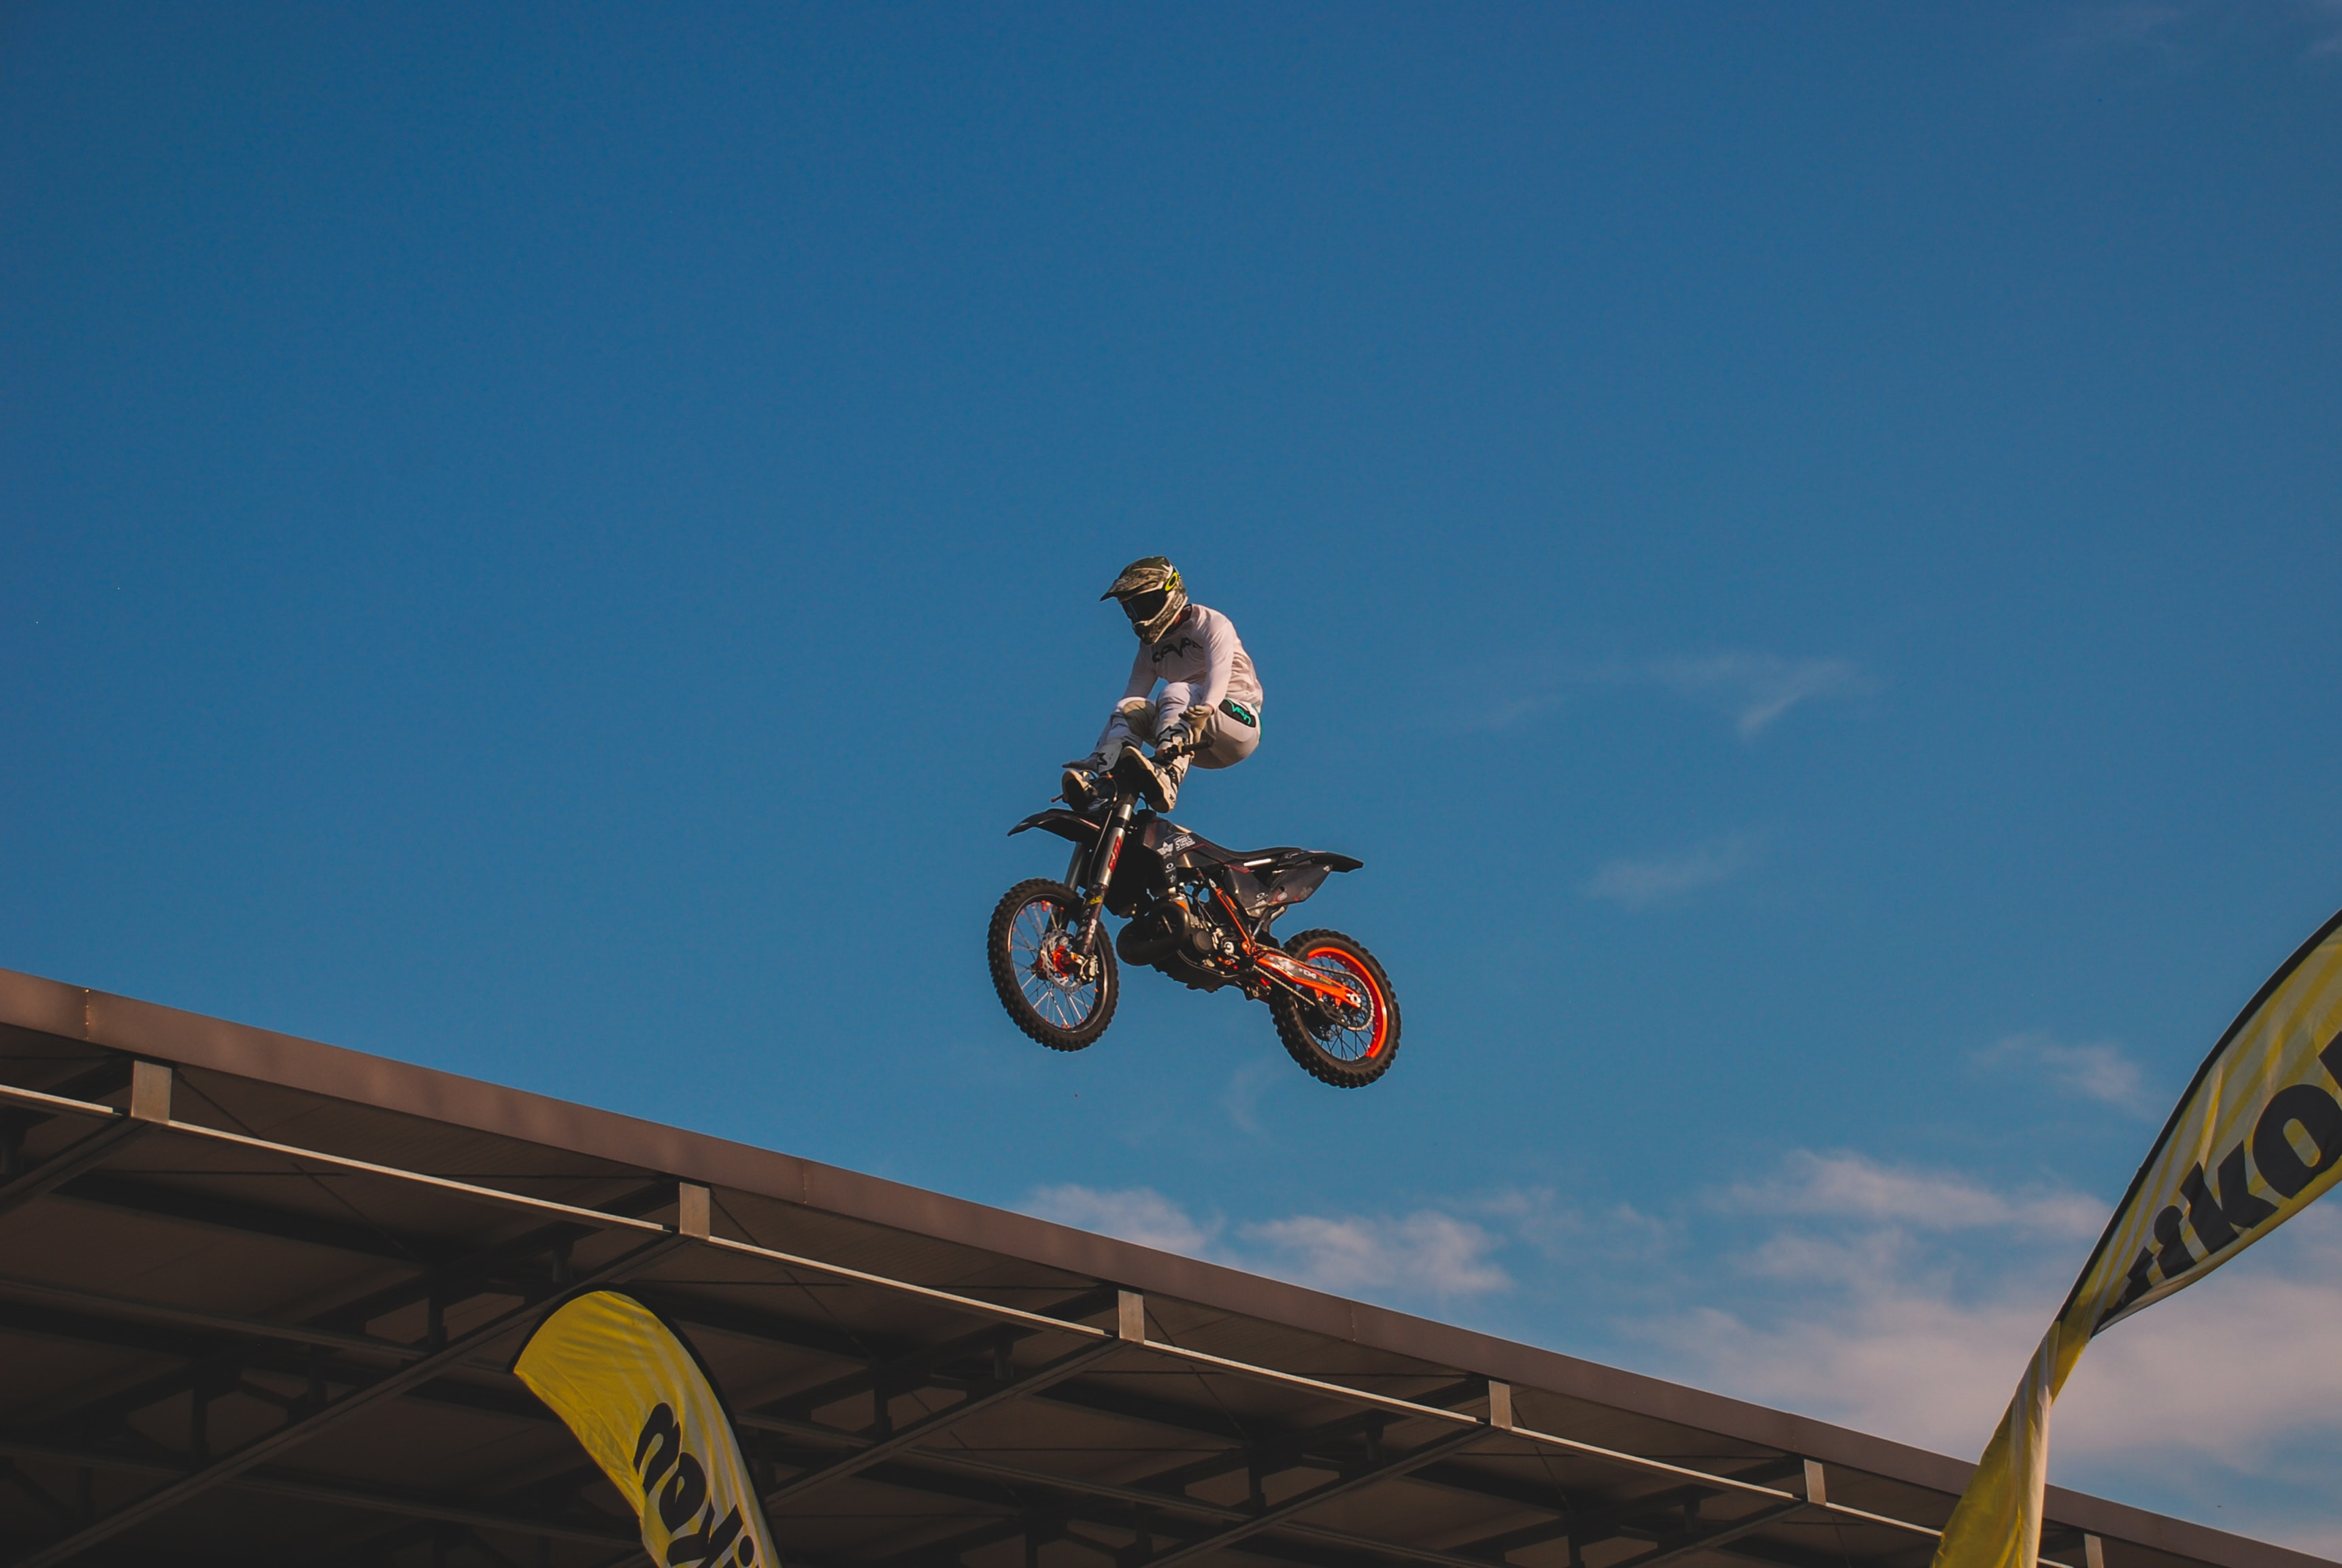 man on dirt bike on roof